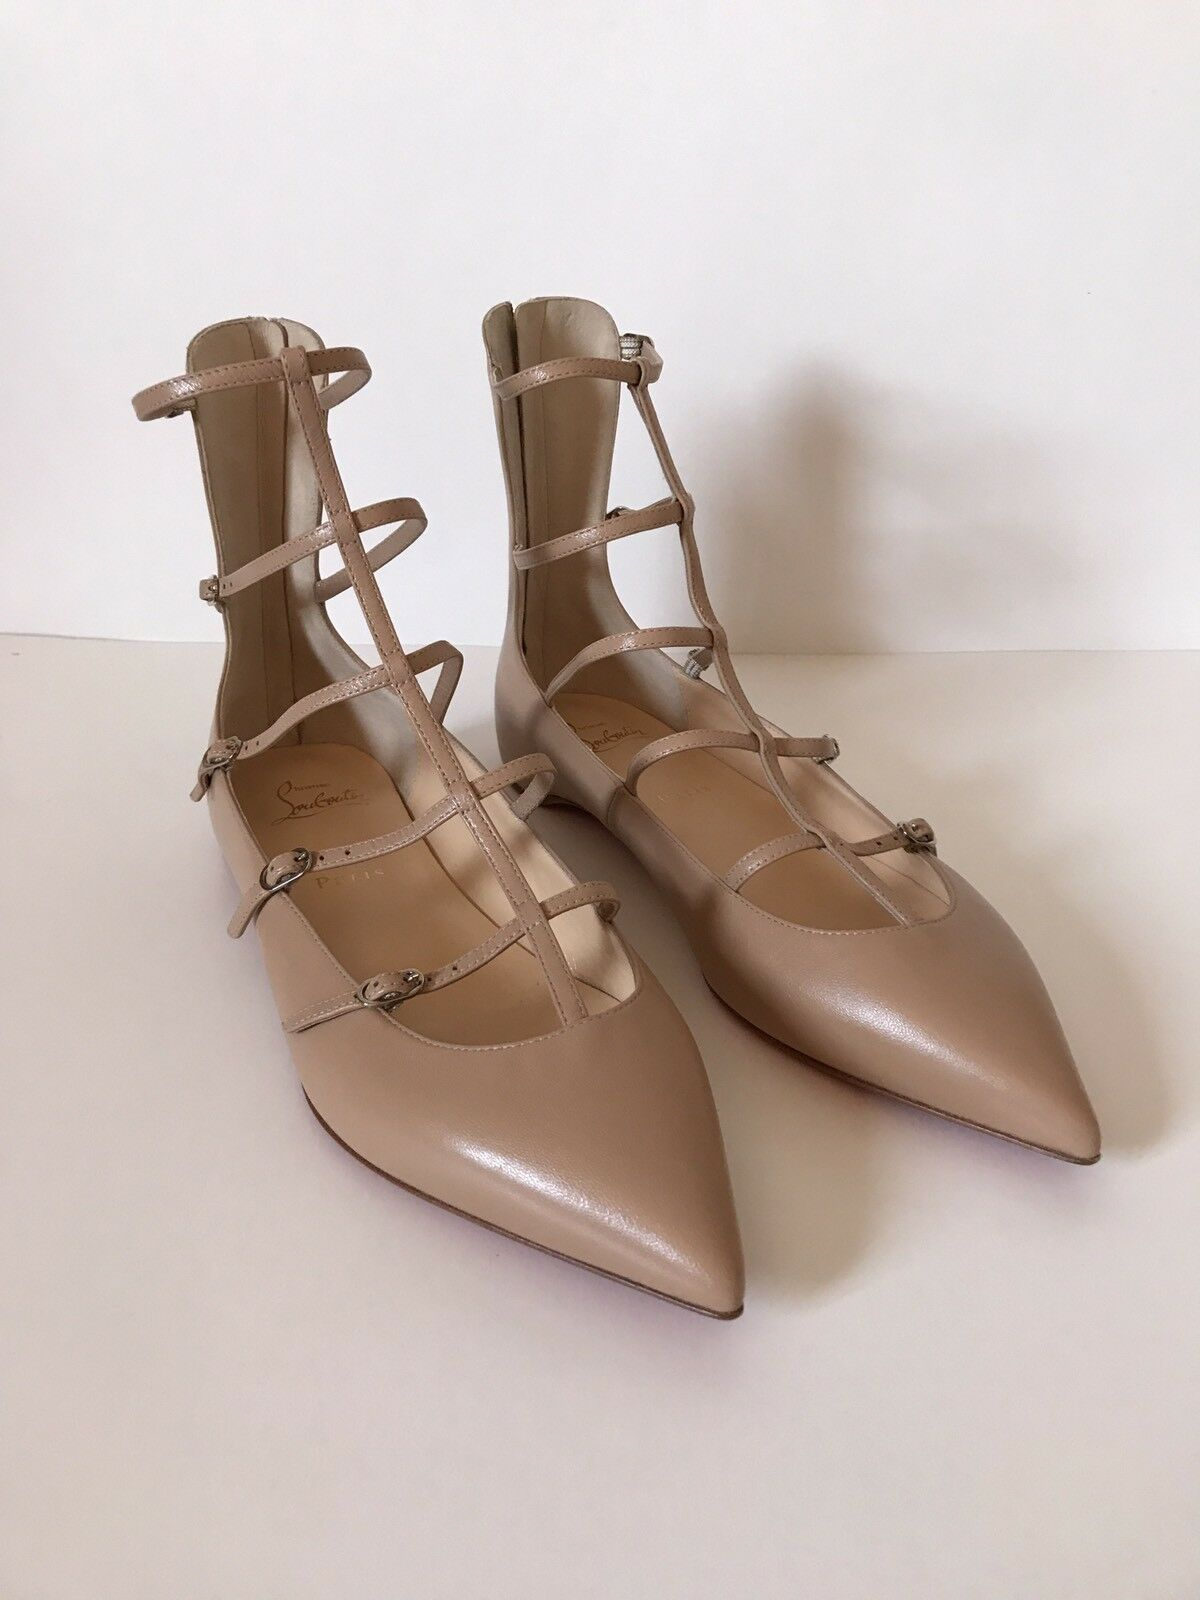 Christian Louboutin Toerless Muse Caged Pointed-Toe Flats Nude Size 39 1/2